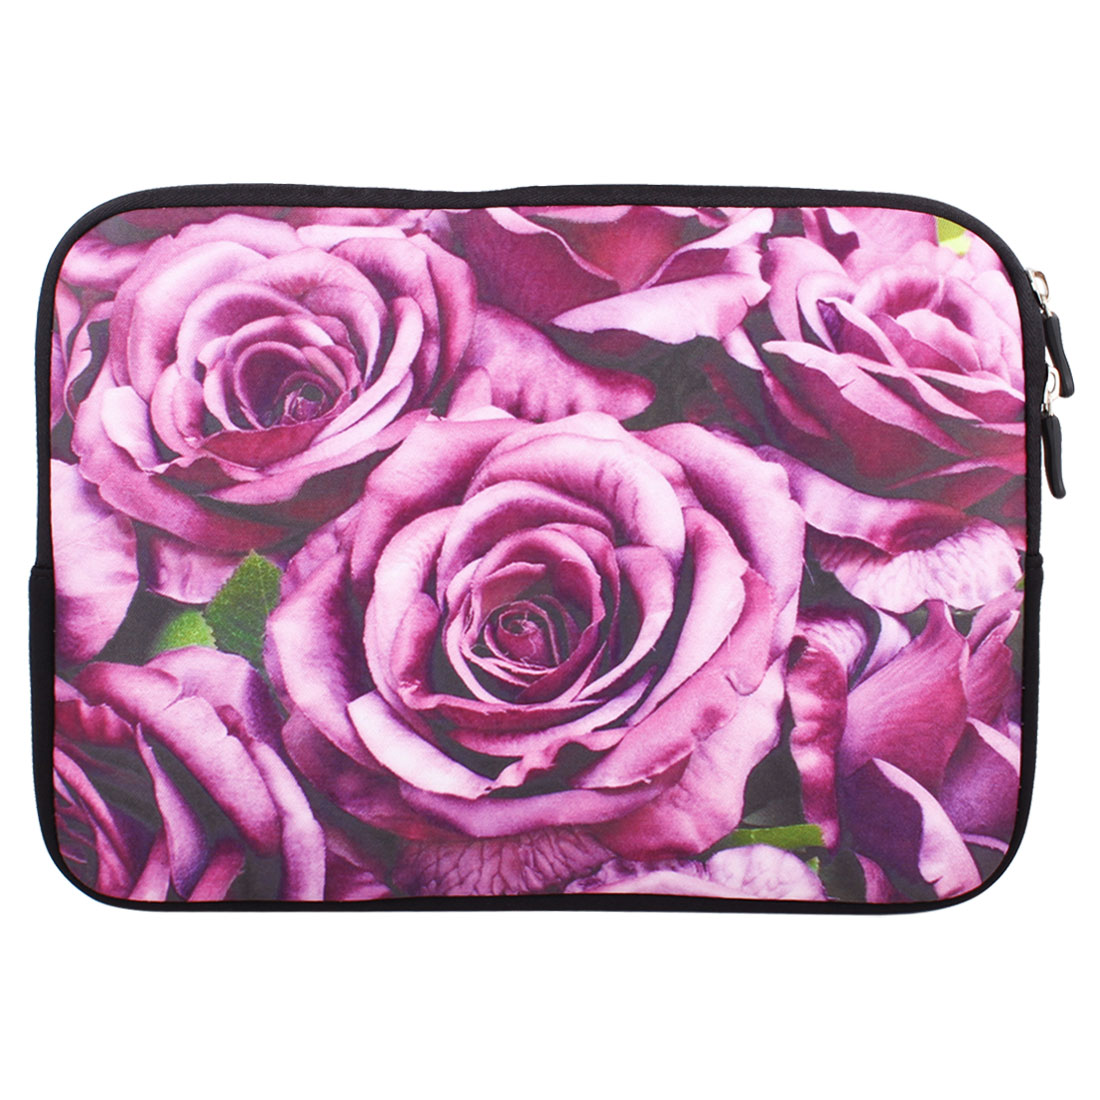 "Rose Flowers 10"" 10.1"" 10.2"" Neoprene Notebook Laptop Sleeve Bag Case"